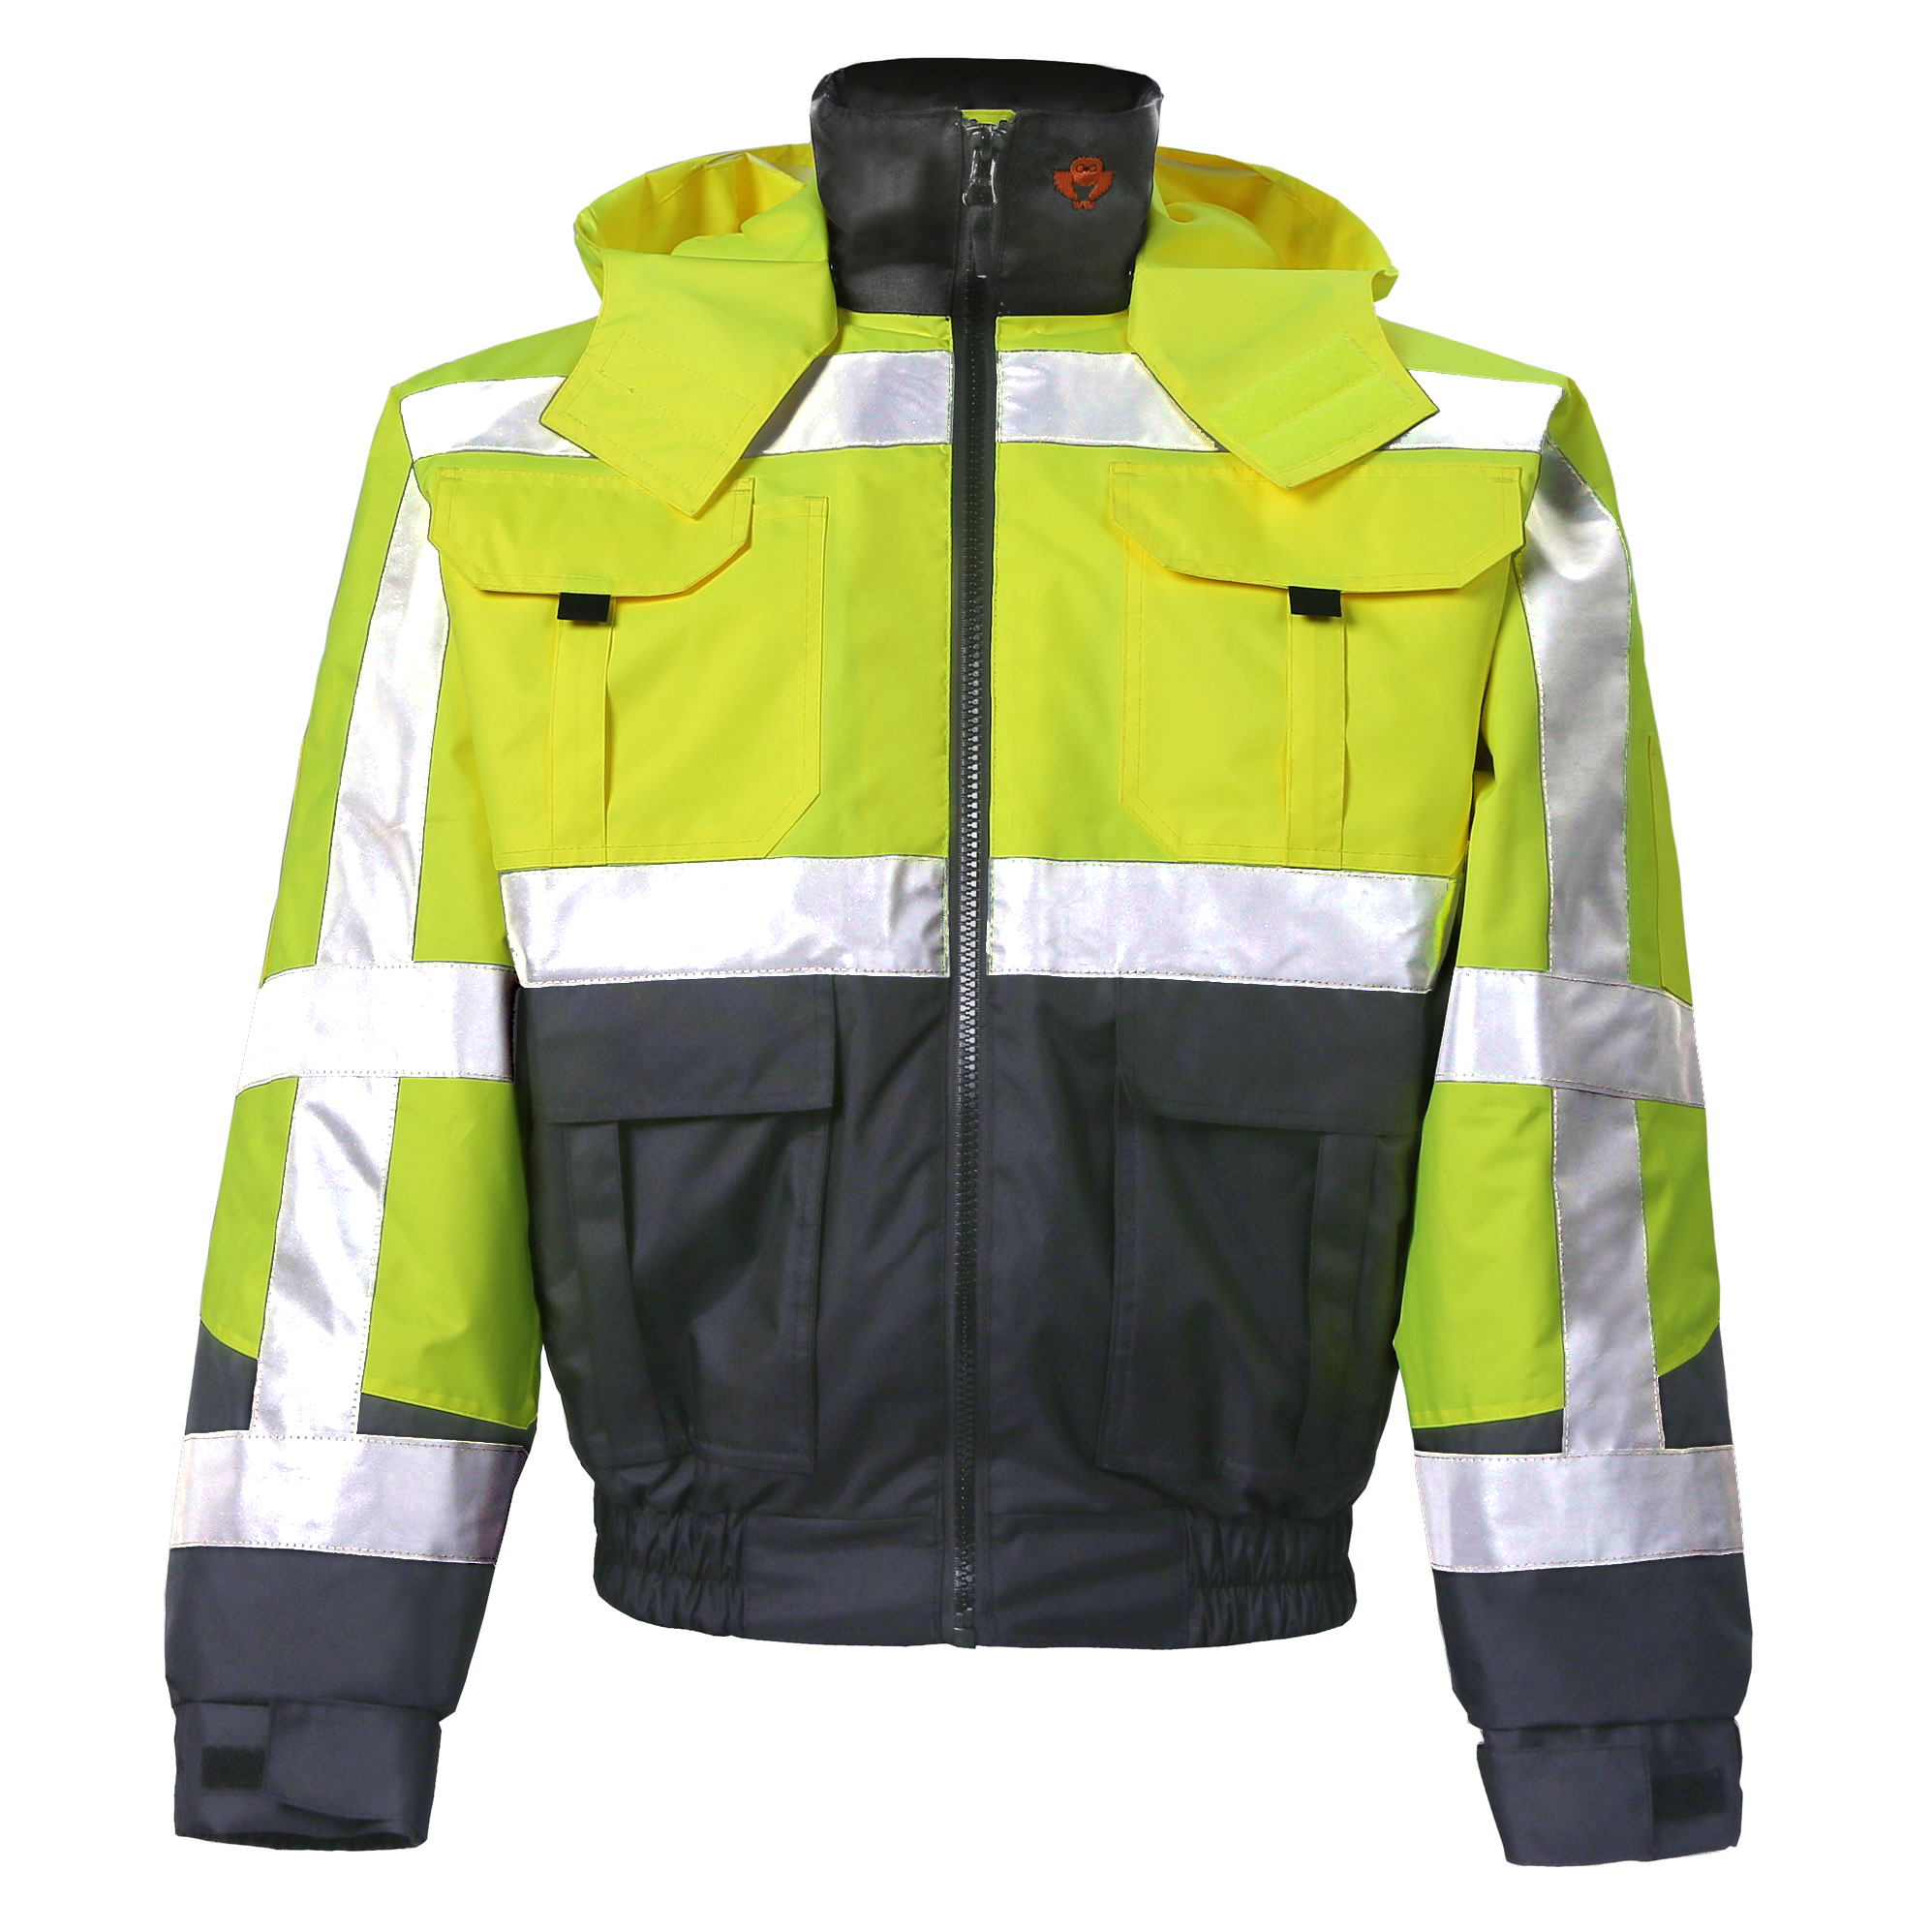 HEAVY DUTY HIGH VIZ JACKET-2W International